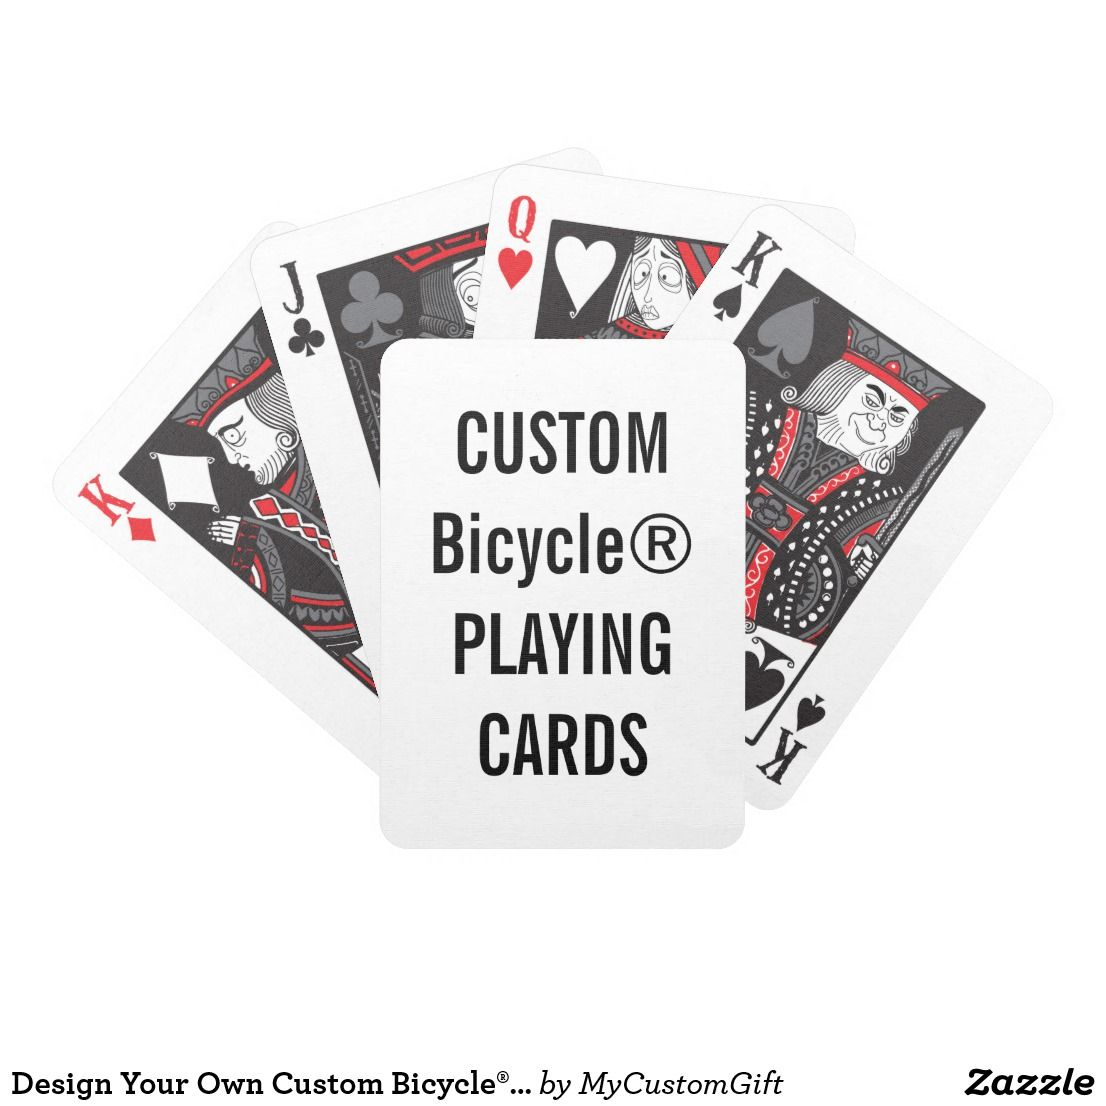 Your Own Custom Bicycle® Playing Cards